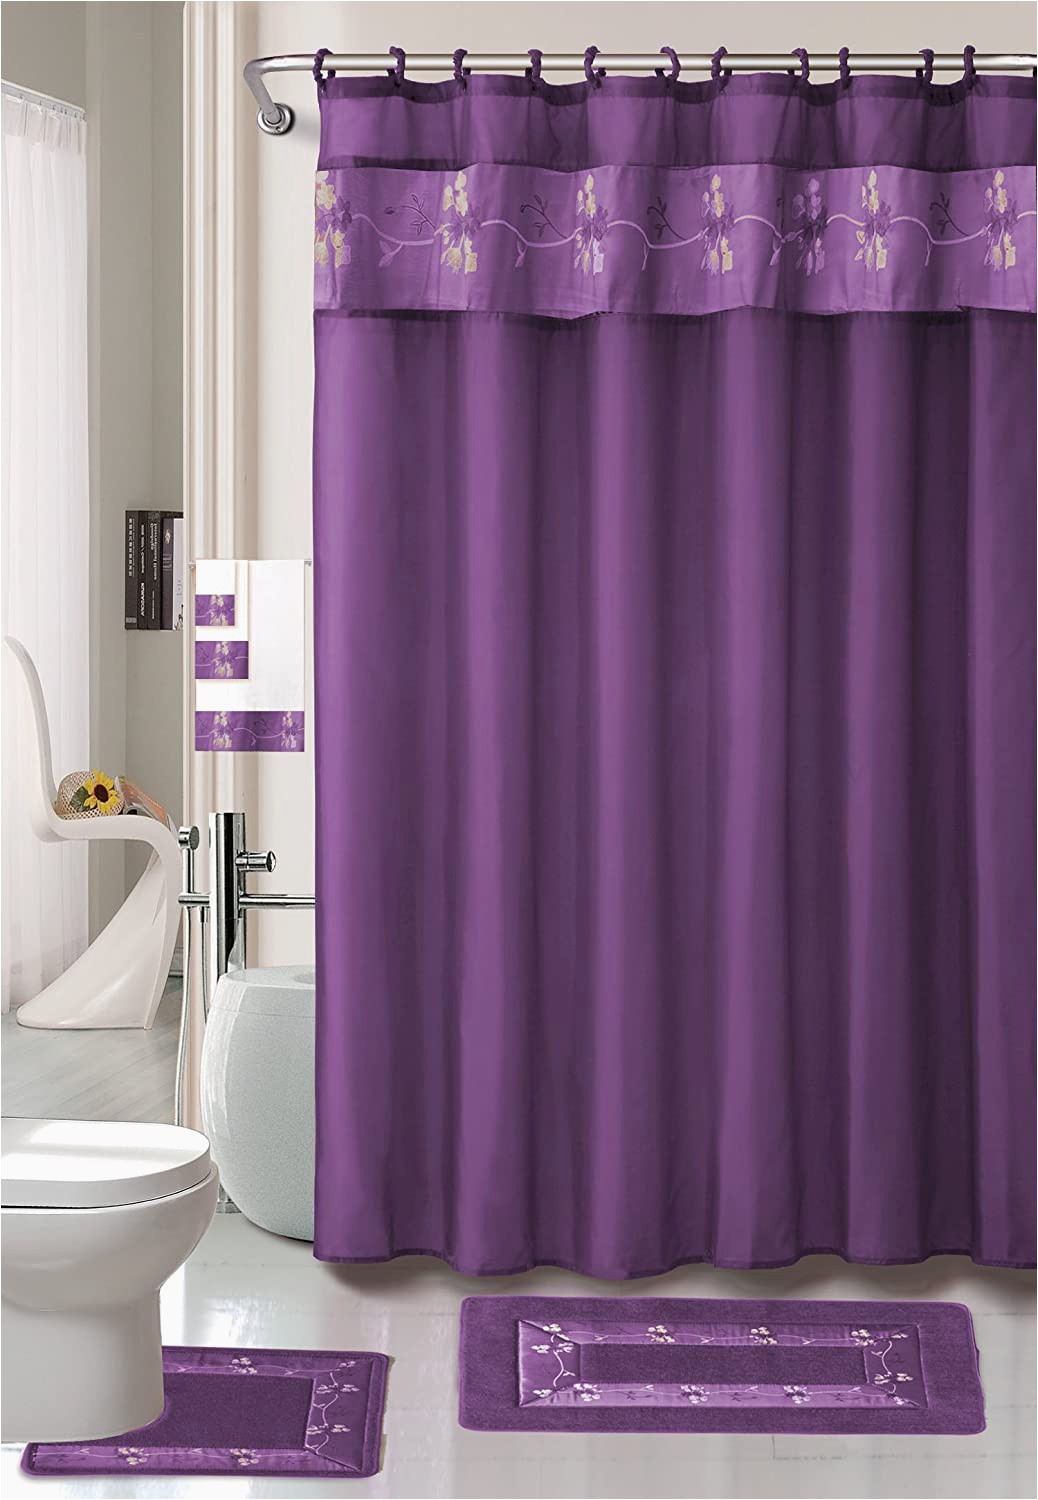 Purple Bathroom Rugs and towels Ahf Wpm Beverly Purple Flower 18 Piece Bathroom Set 2 Rugs Mats 1 Fabric Shower Curtain 12 Fabric Covered Rings 3 Pc Decorative towel Set